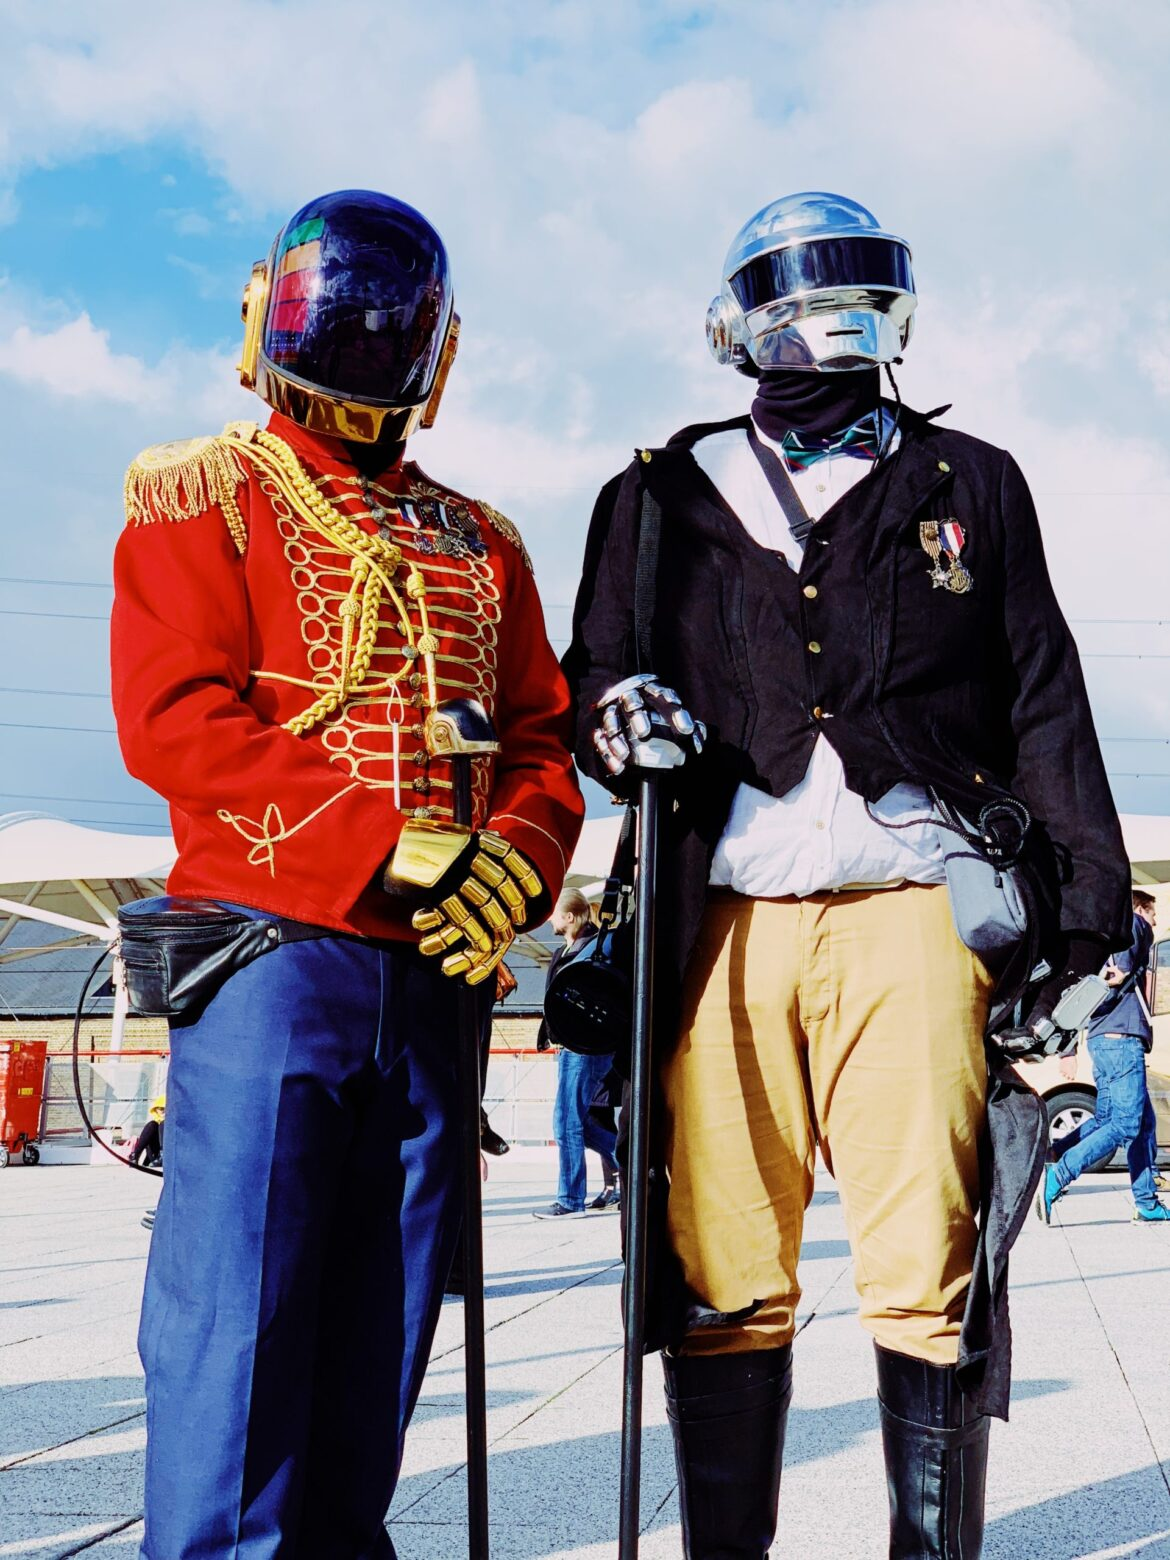 The End of an Era – Electronic Duo Daft Punk Retire – The Muse